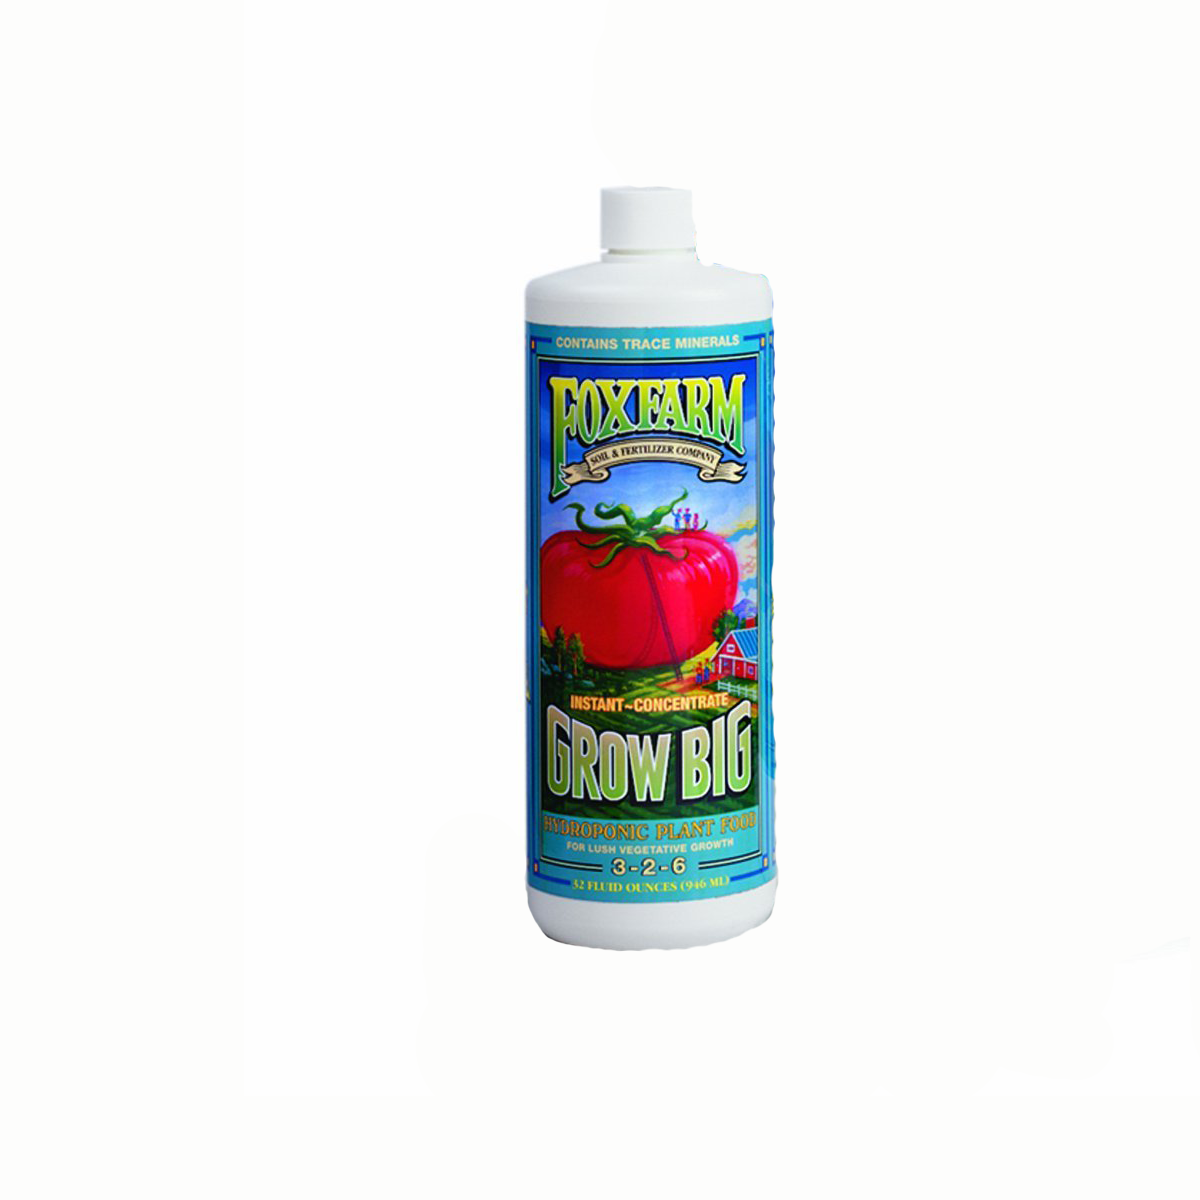 Fox Farm Grow Big Hydroponic Liquid Concentrate Fertilizer 3-2-6, 16 Ounces at Sears.com